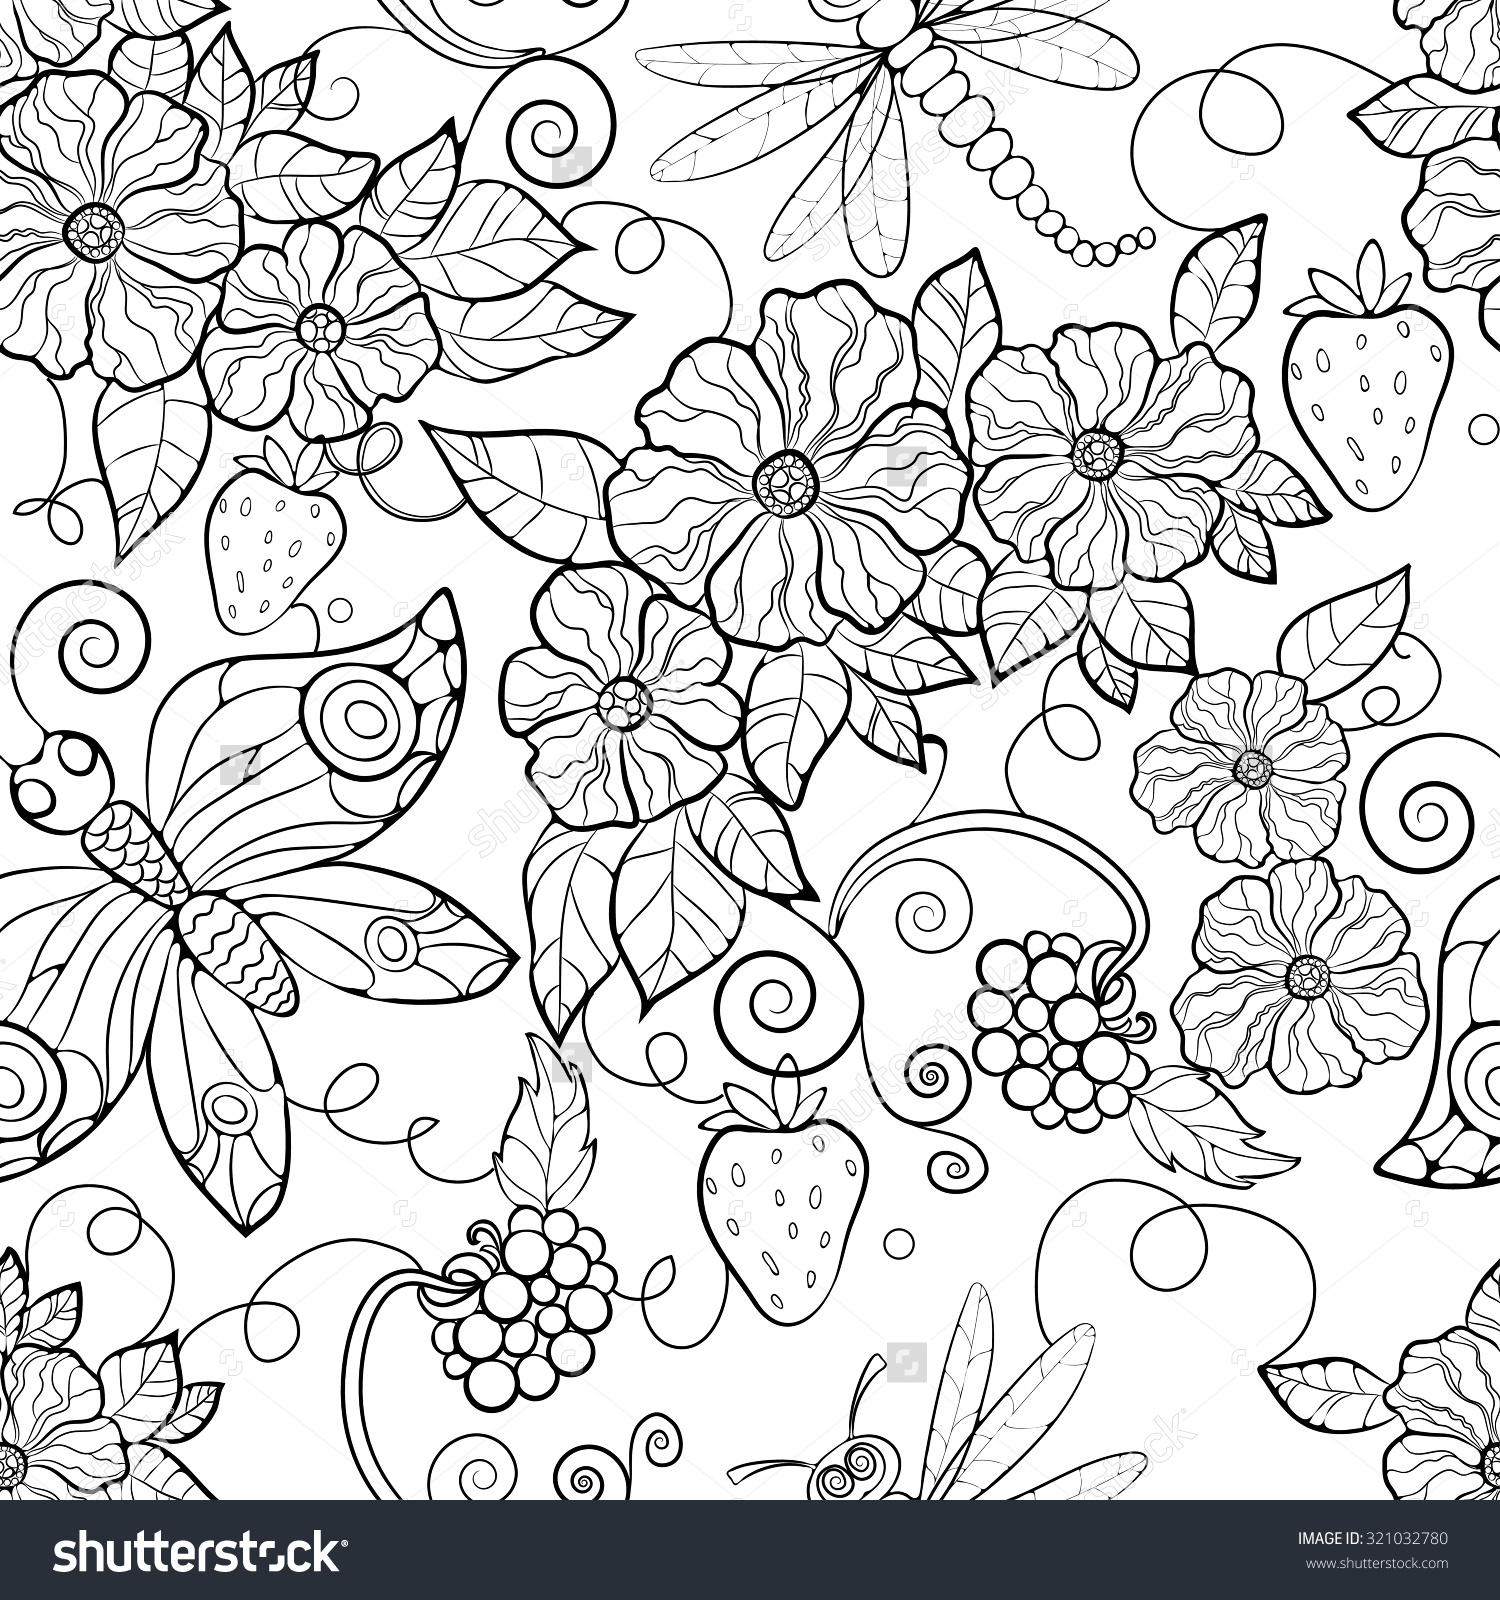 1500x1600 Immediately Flower Patterns To Color Coloring Pages For Adults